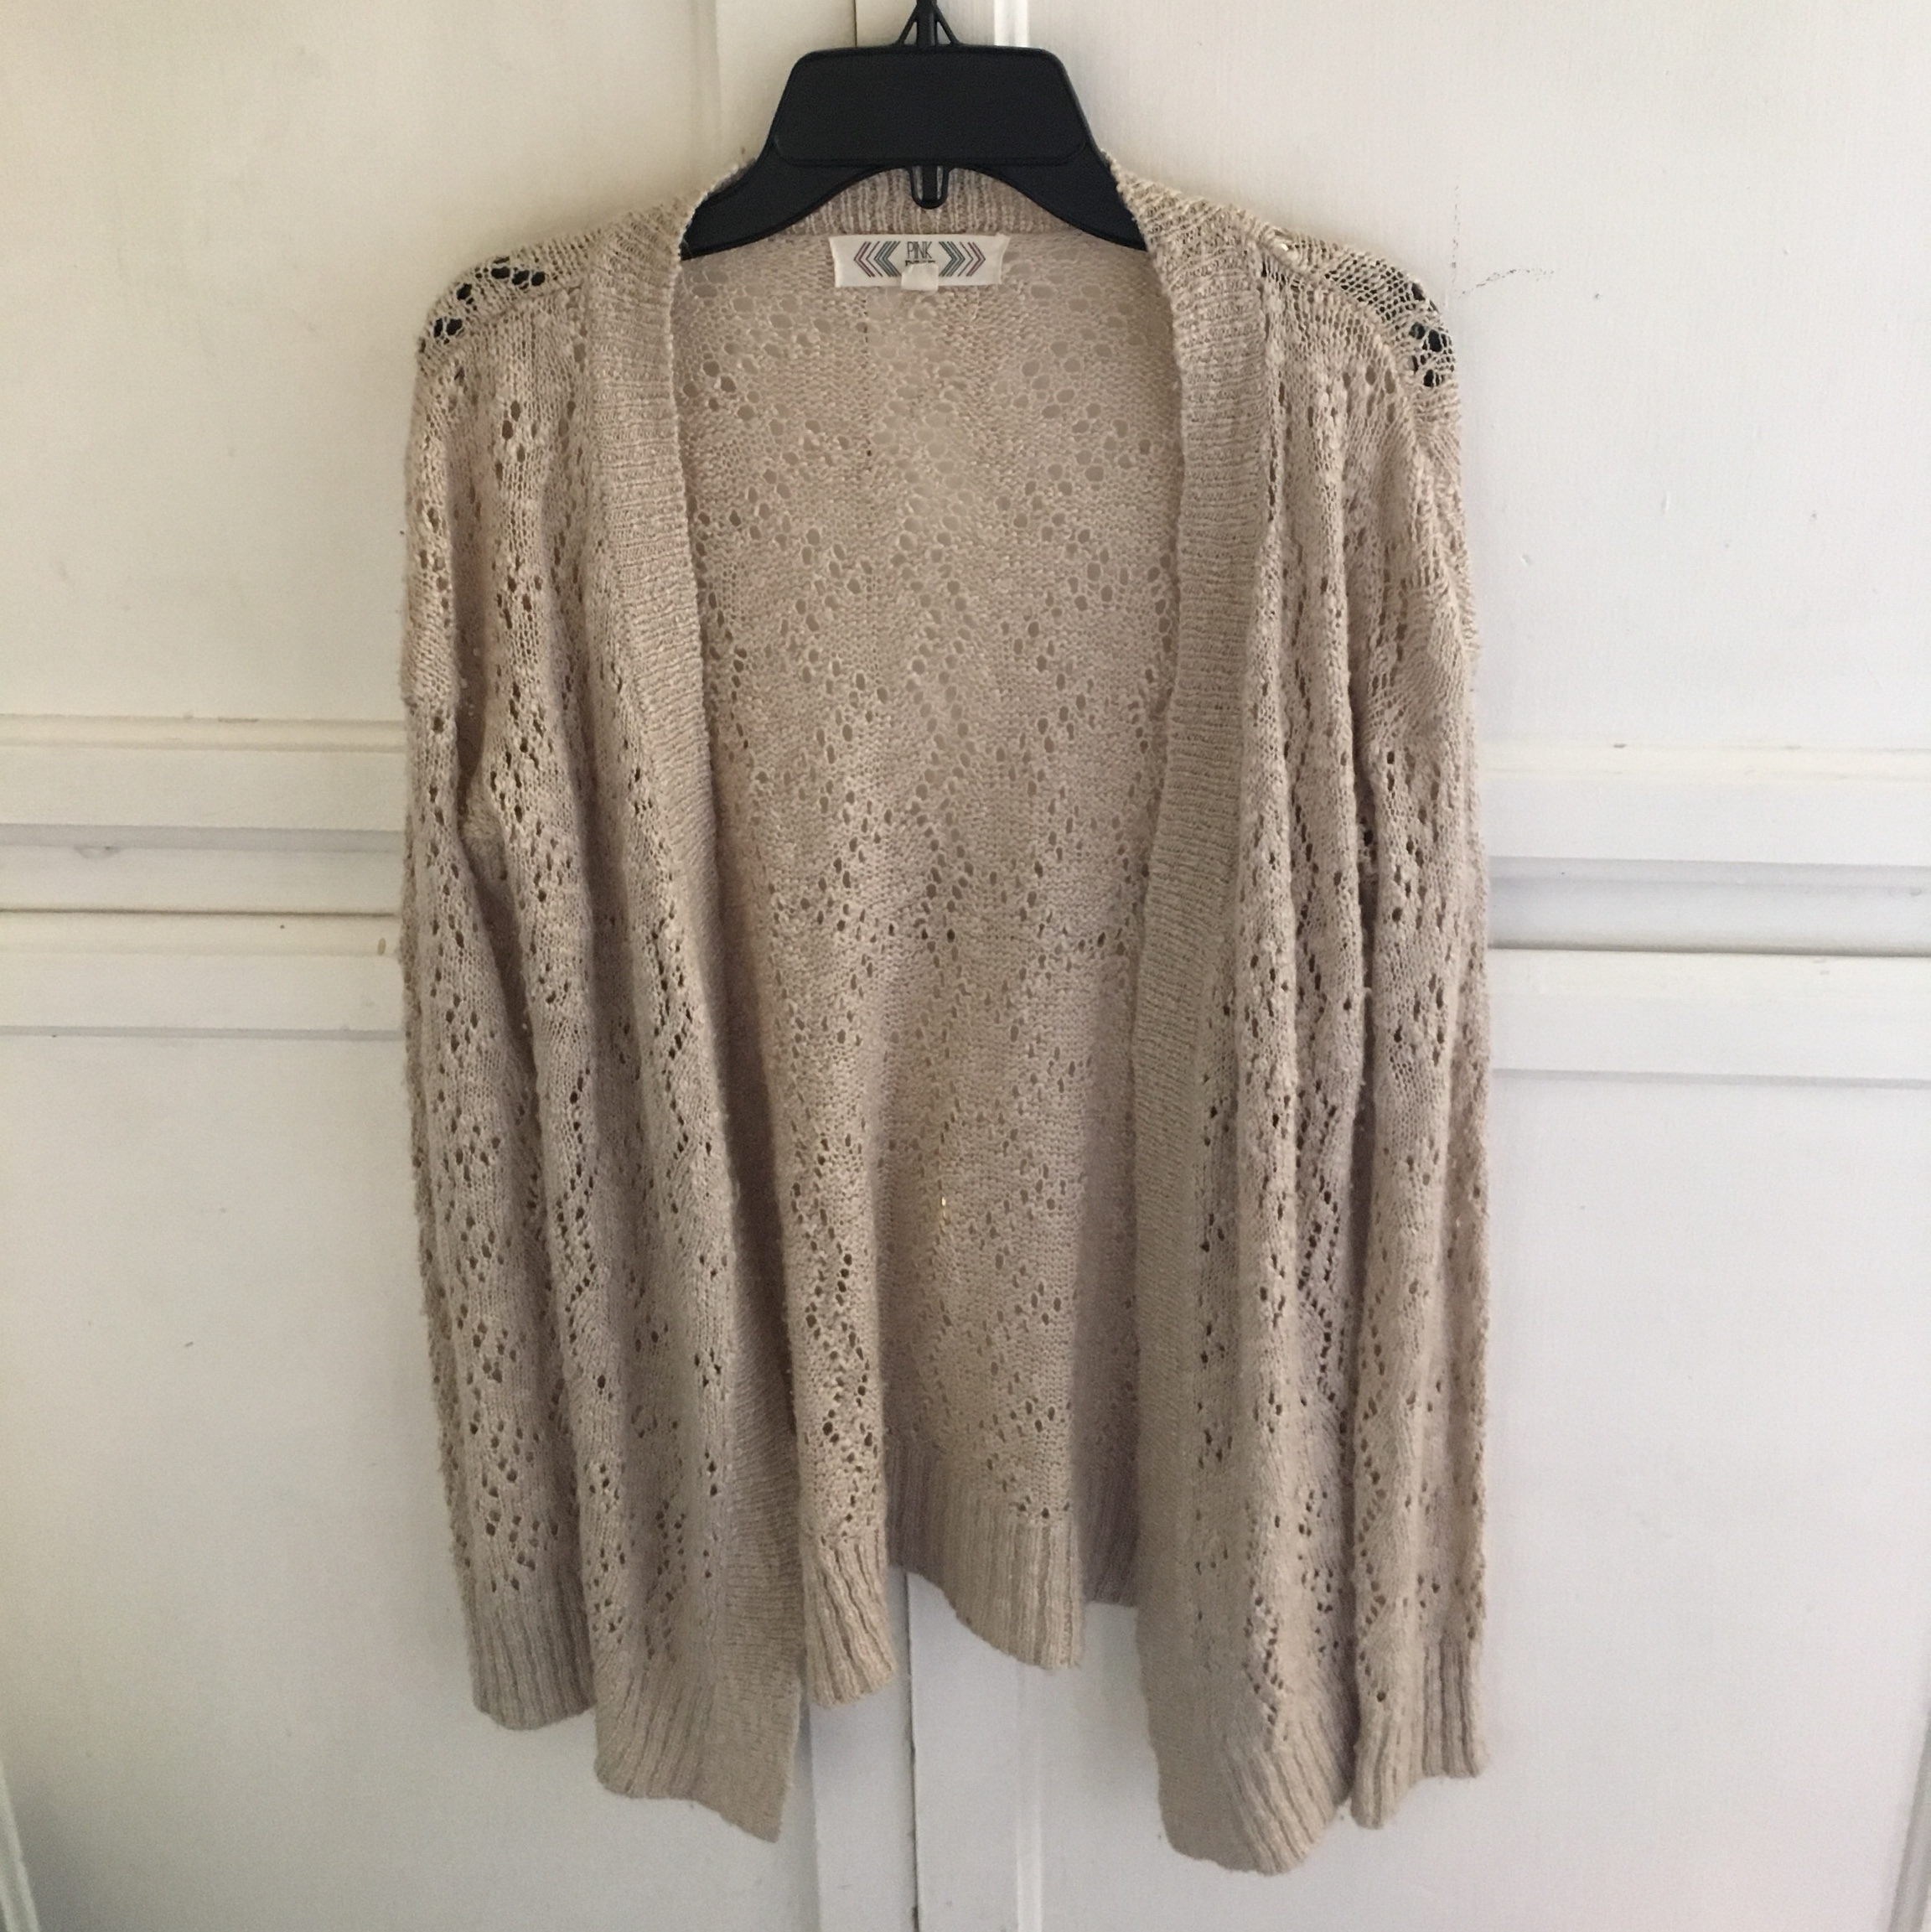 bc9123e60 glowtoure. Los Angeles, United States. cute knit cardigan from nordstrom  rack in a ...